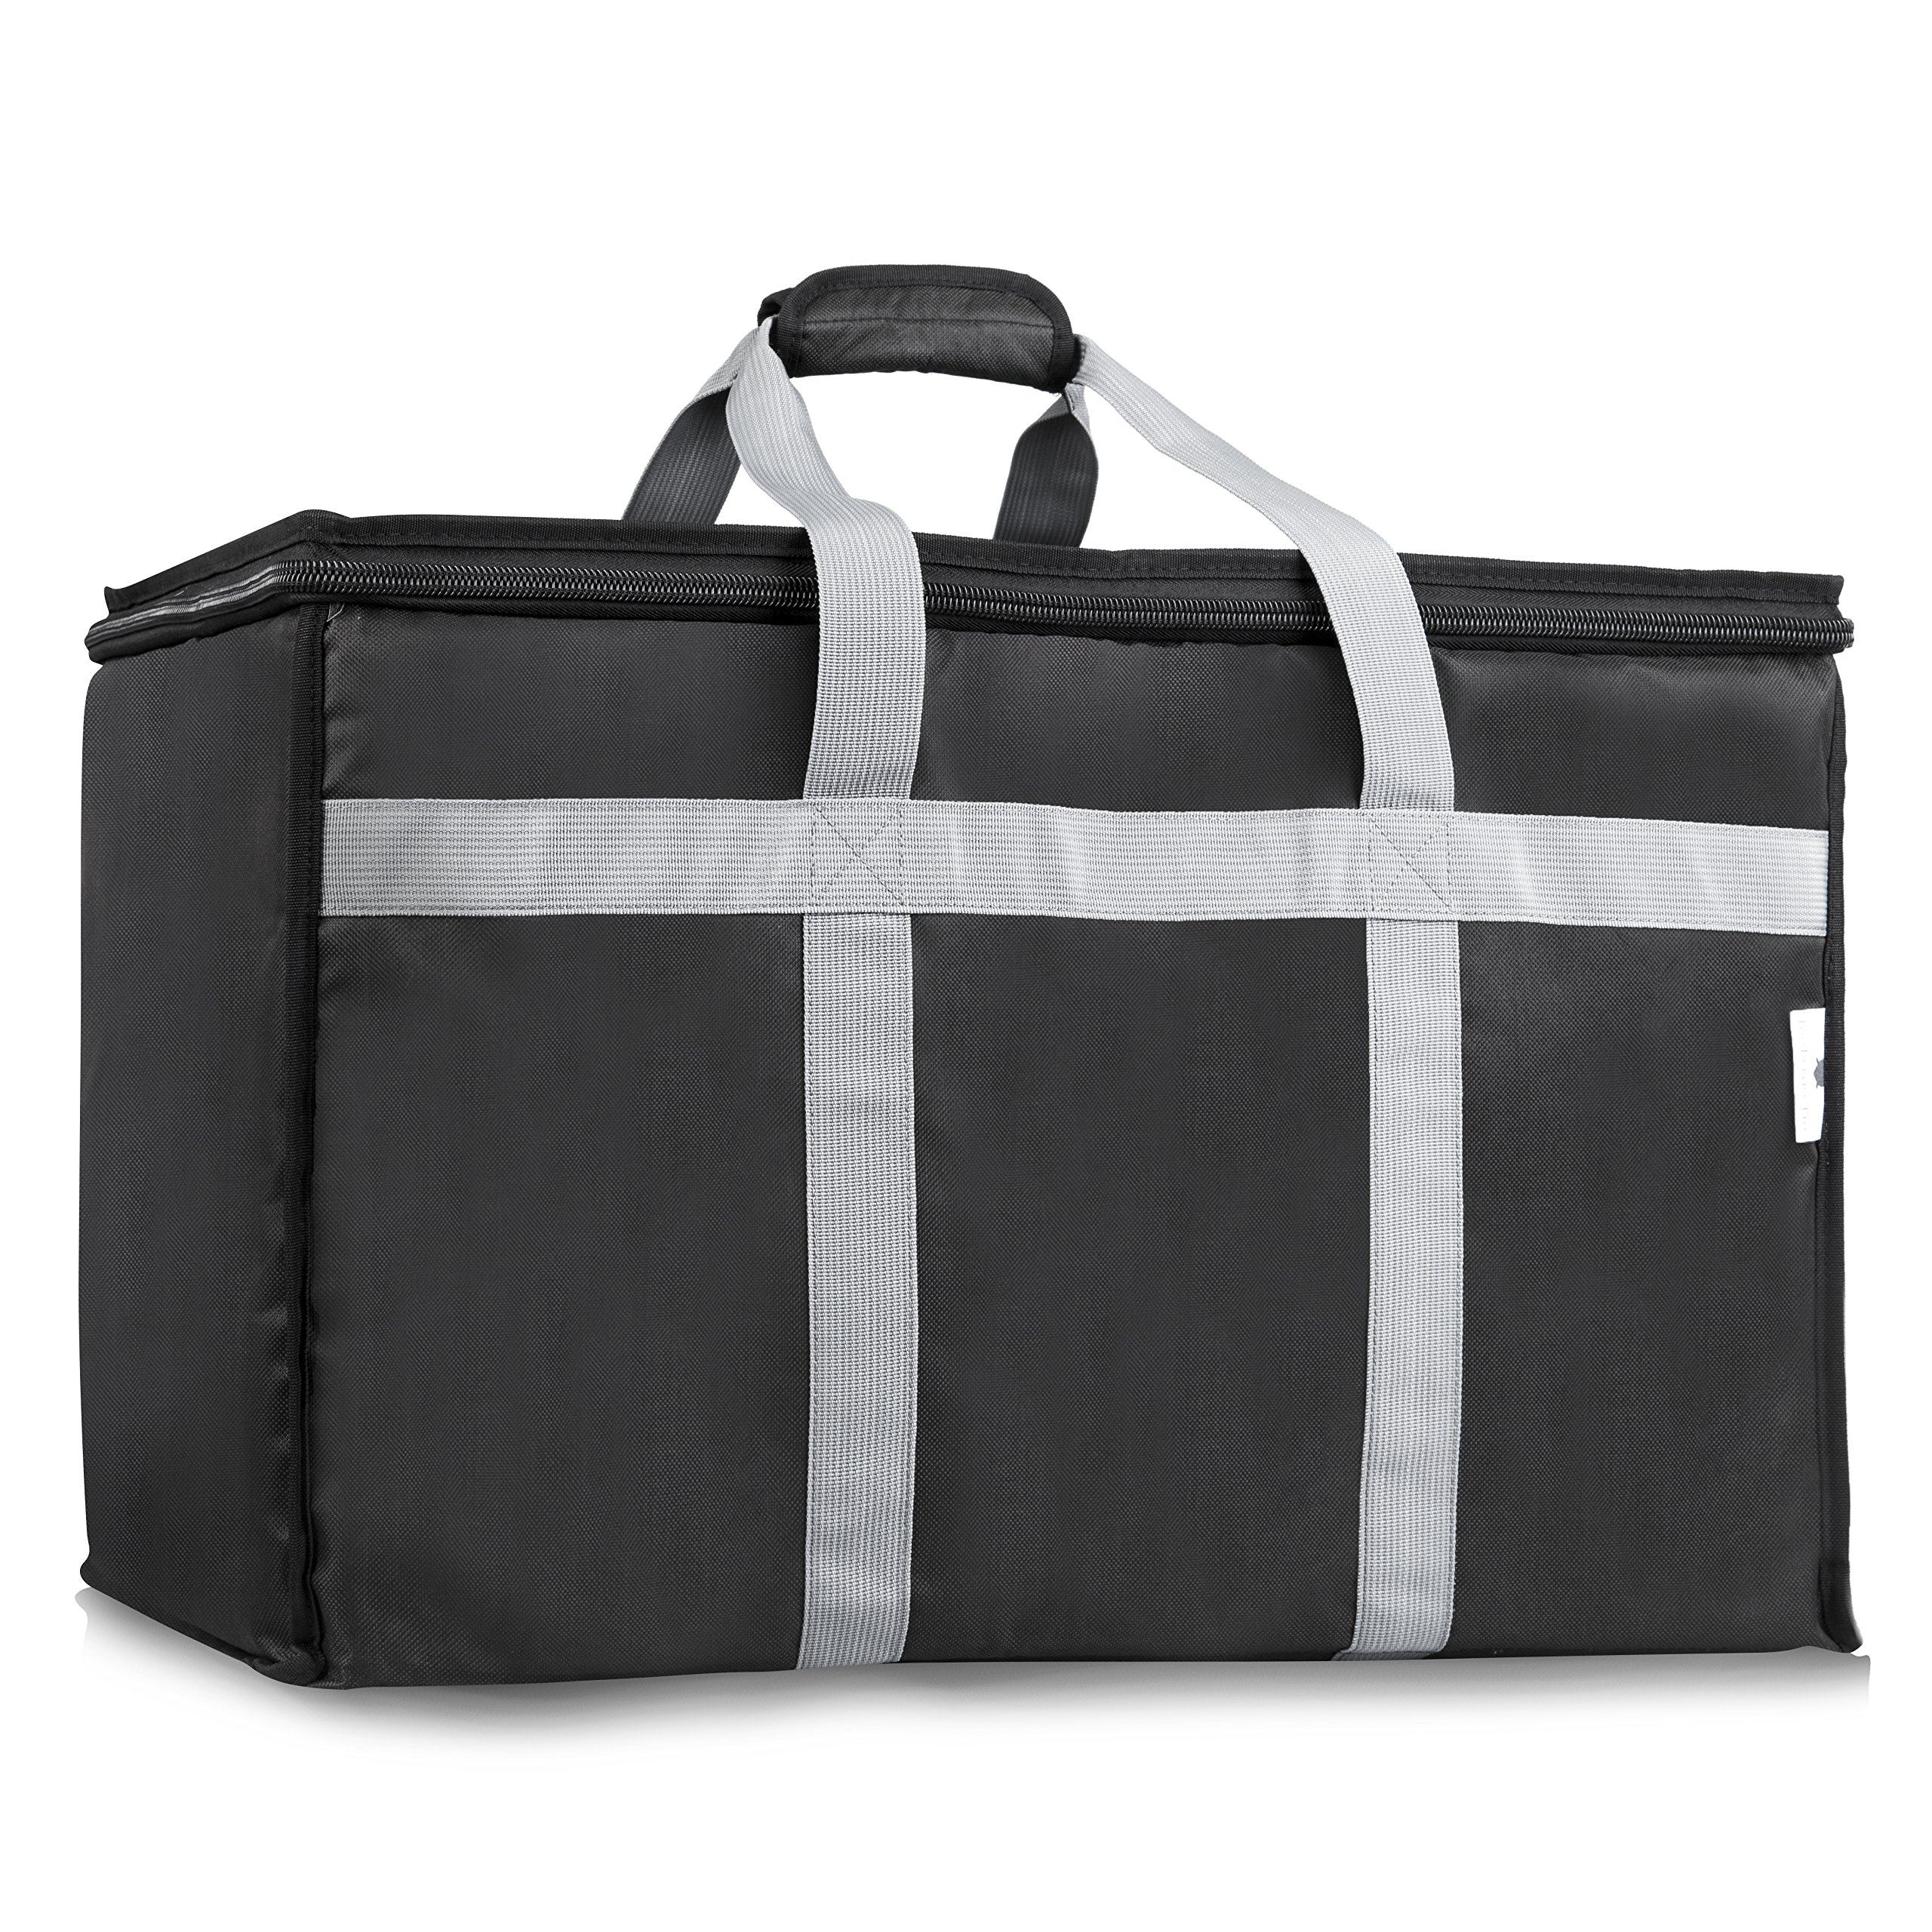 Insulated Food Delivery Bag - Upgraded Premium Interior Lining - 15mm Insulation - Commercial Grade Thermal Carrier for Hot or Cold Temperatures - Perfect for Catering or Any Food Transport Occasion by Foodservice Pro